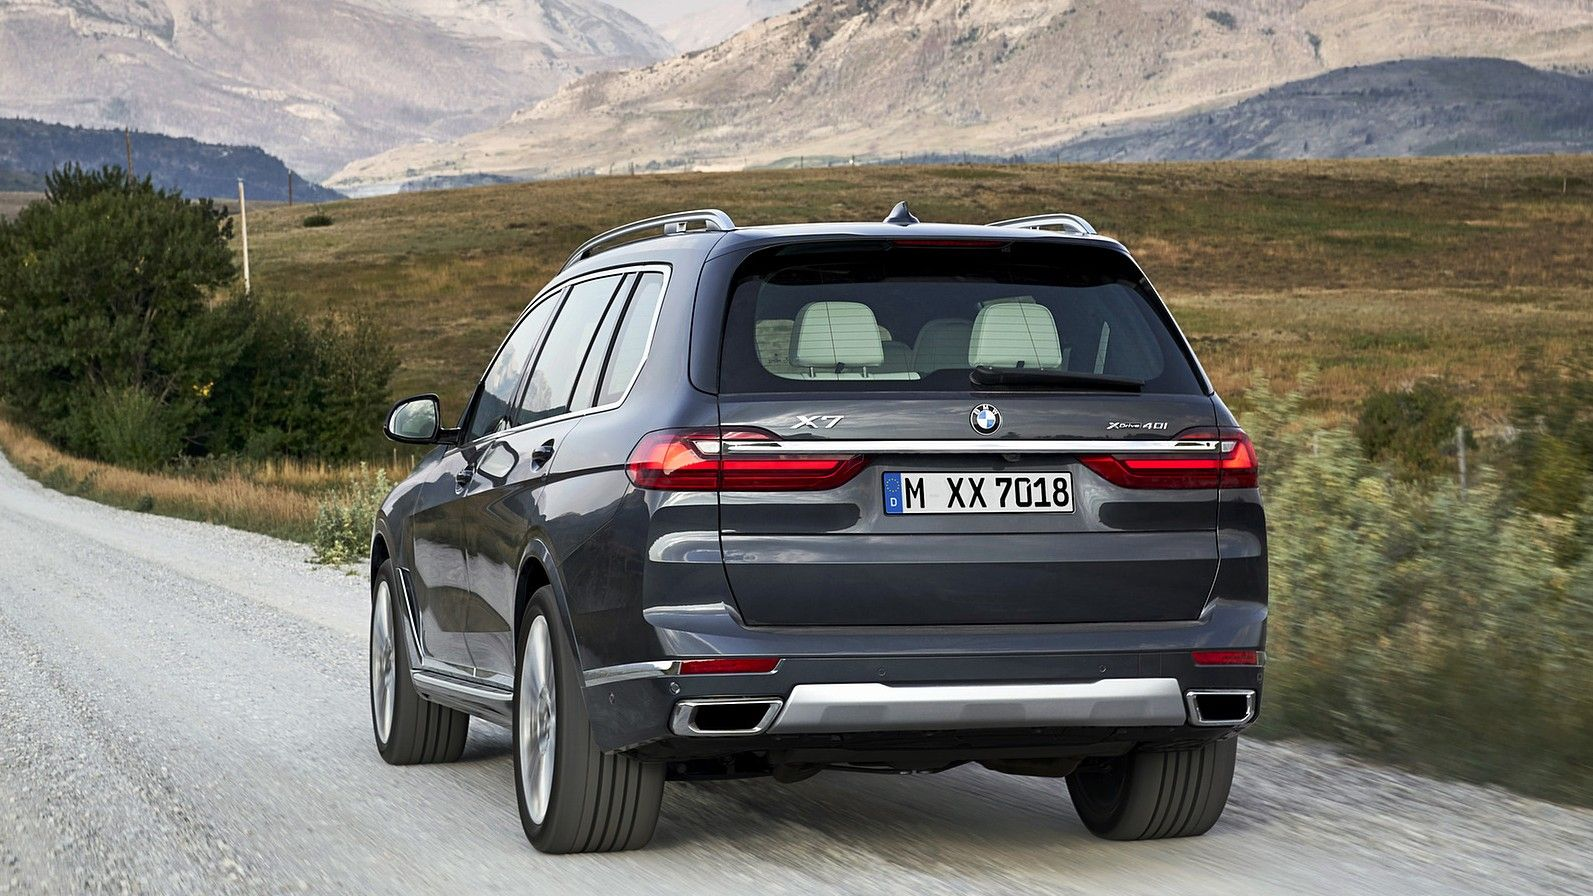 2020 BMW X7 rear 3 quarters gray